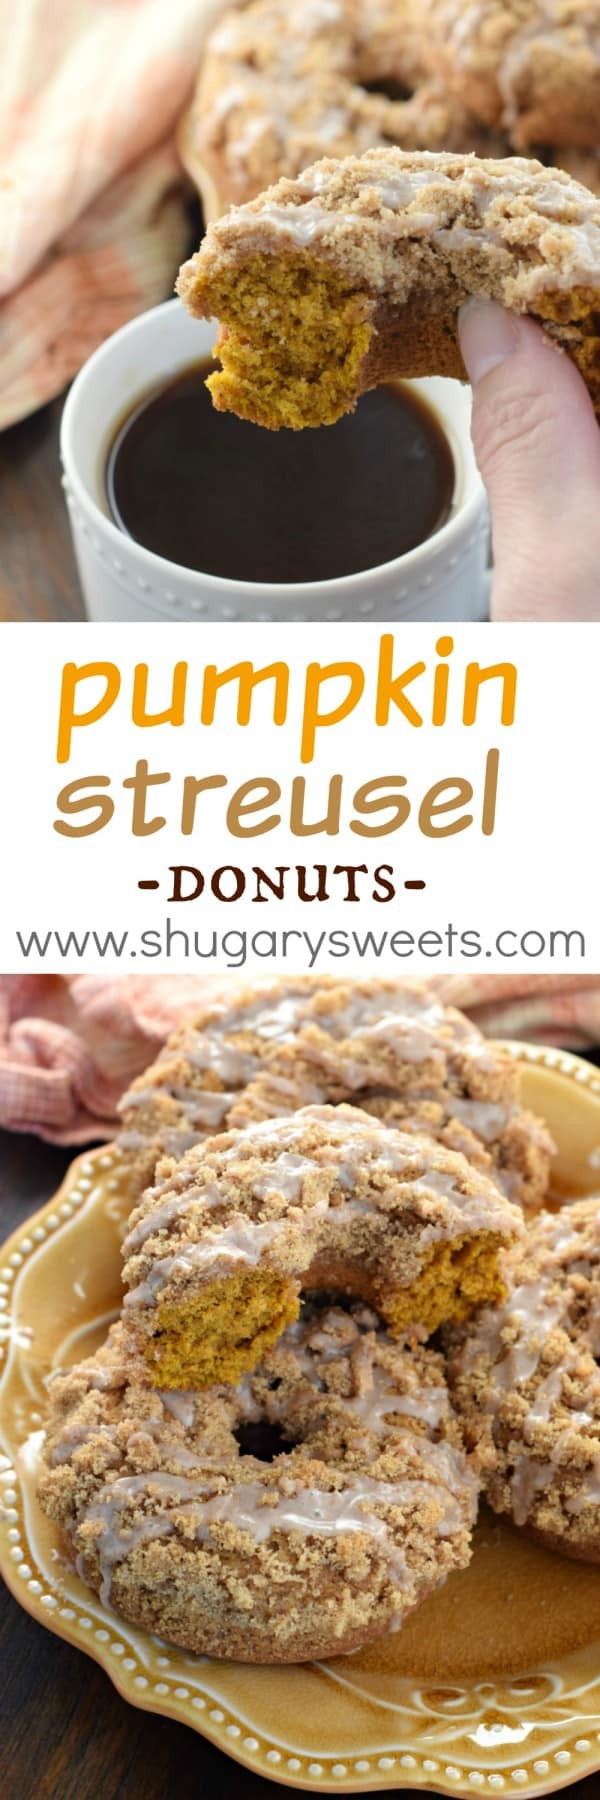 Pumpkin Streusel Donuts: baked and delicious, the perfect fall breakfast!